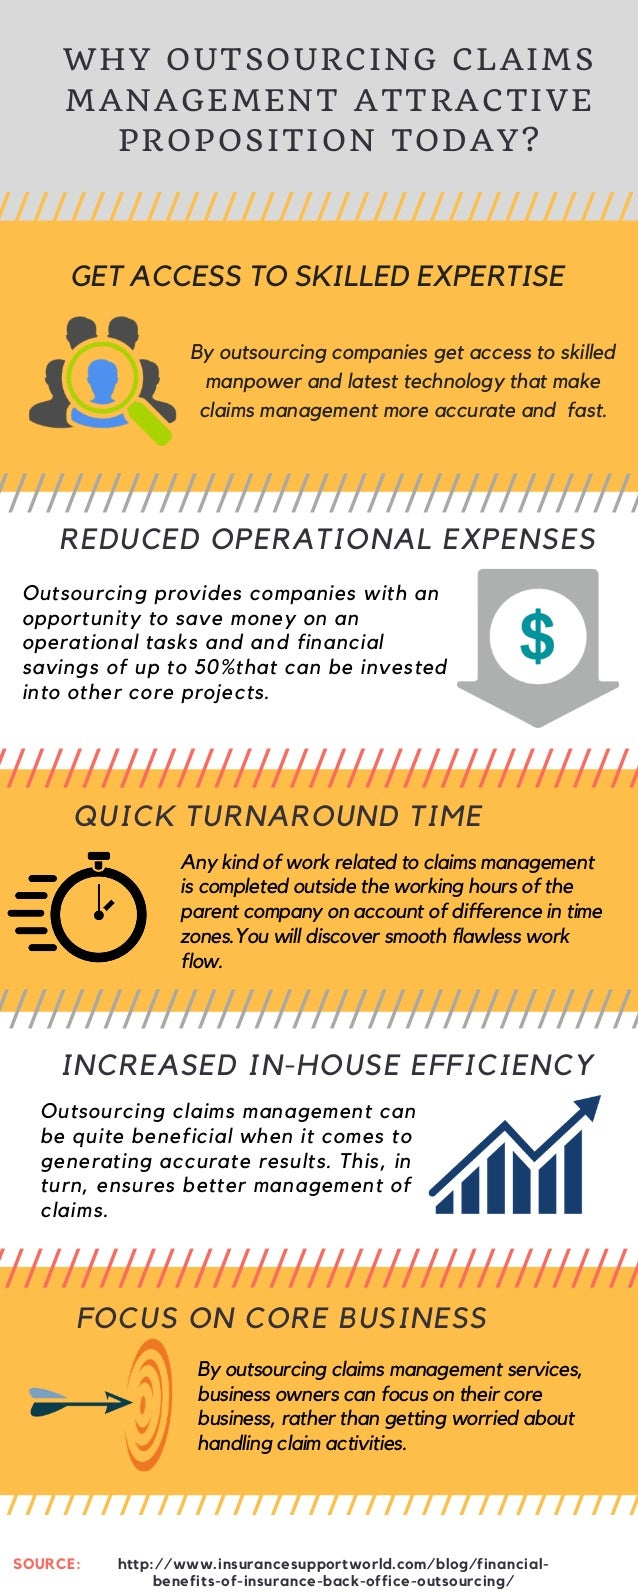 Outsourcing in Today's Business World